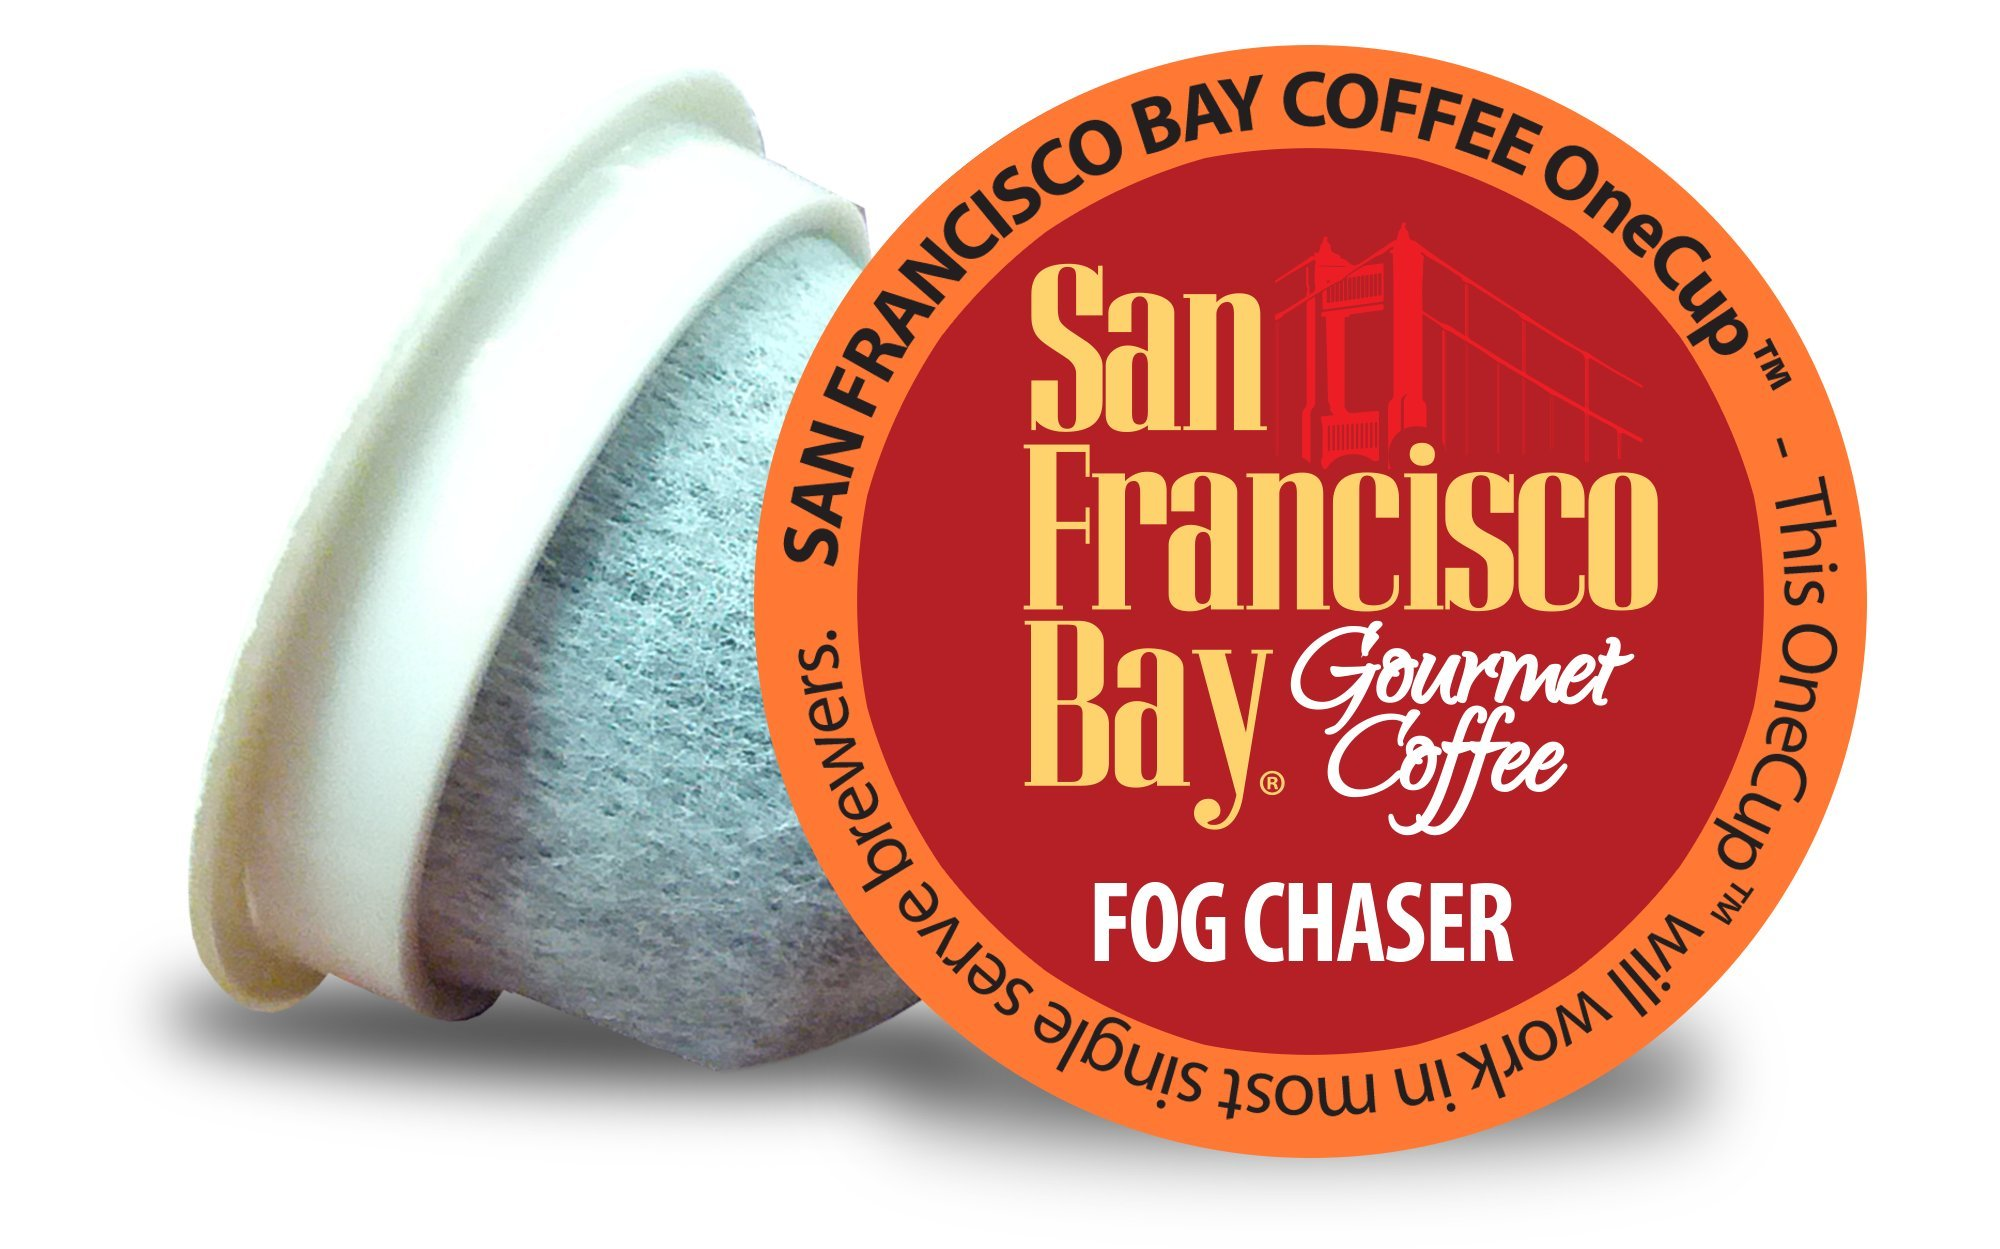 San Francisco Bay OneCup, Fog Chaser, 36 Count- Single Serve Coffee, Compatible with Keurig K-cup Brewers